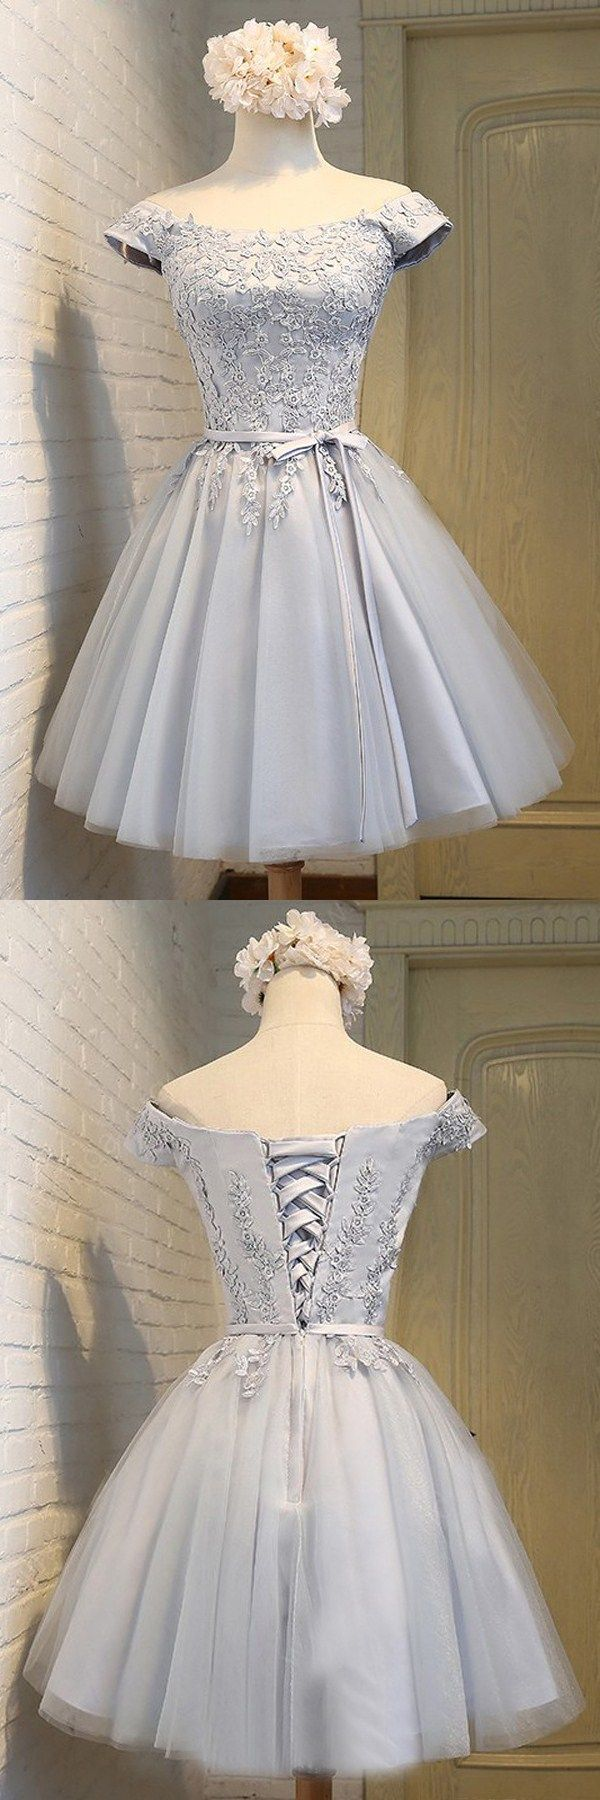 A-Line Off-the-Shoulder Short Sleeveless Gray Tulle Homecoming Dress with Appliques